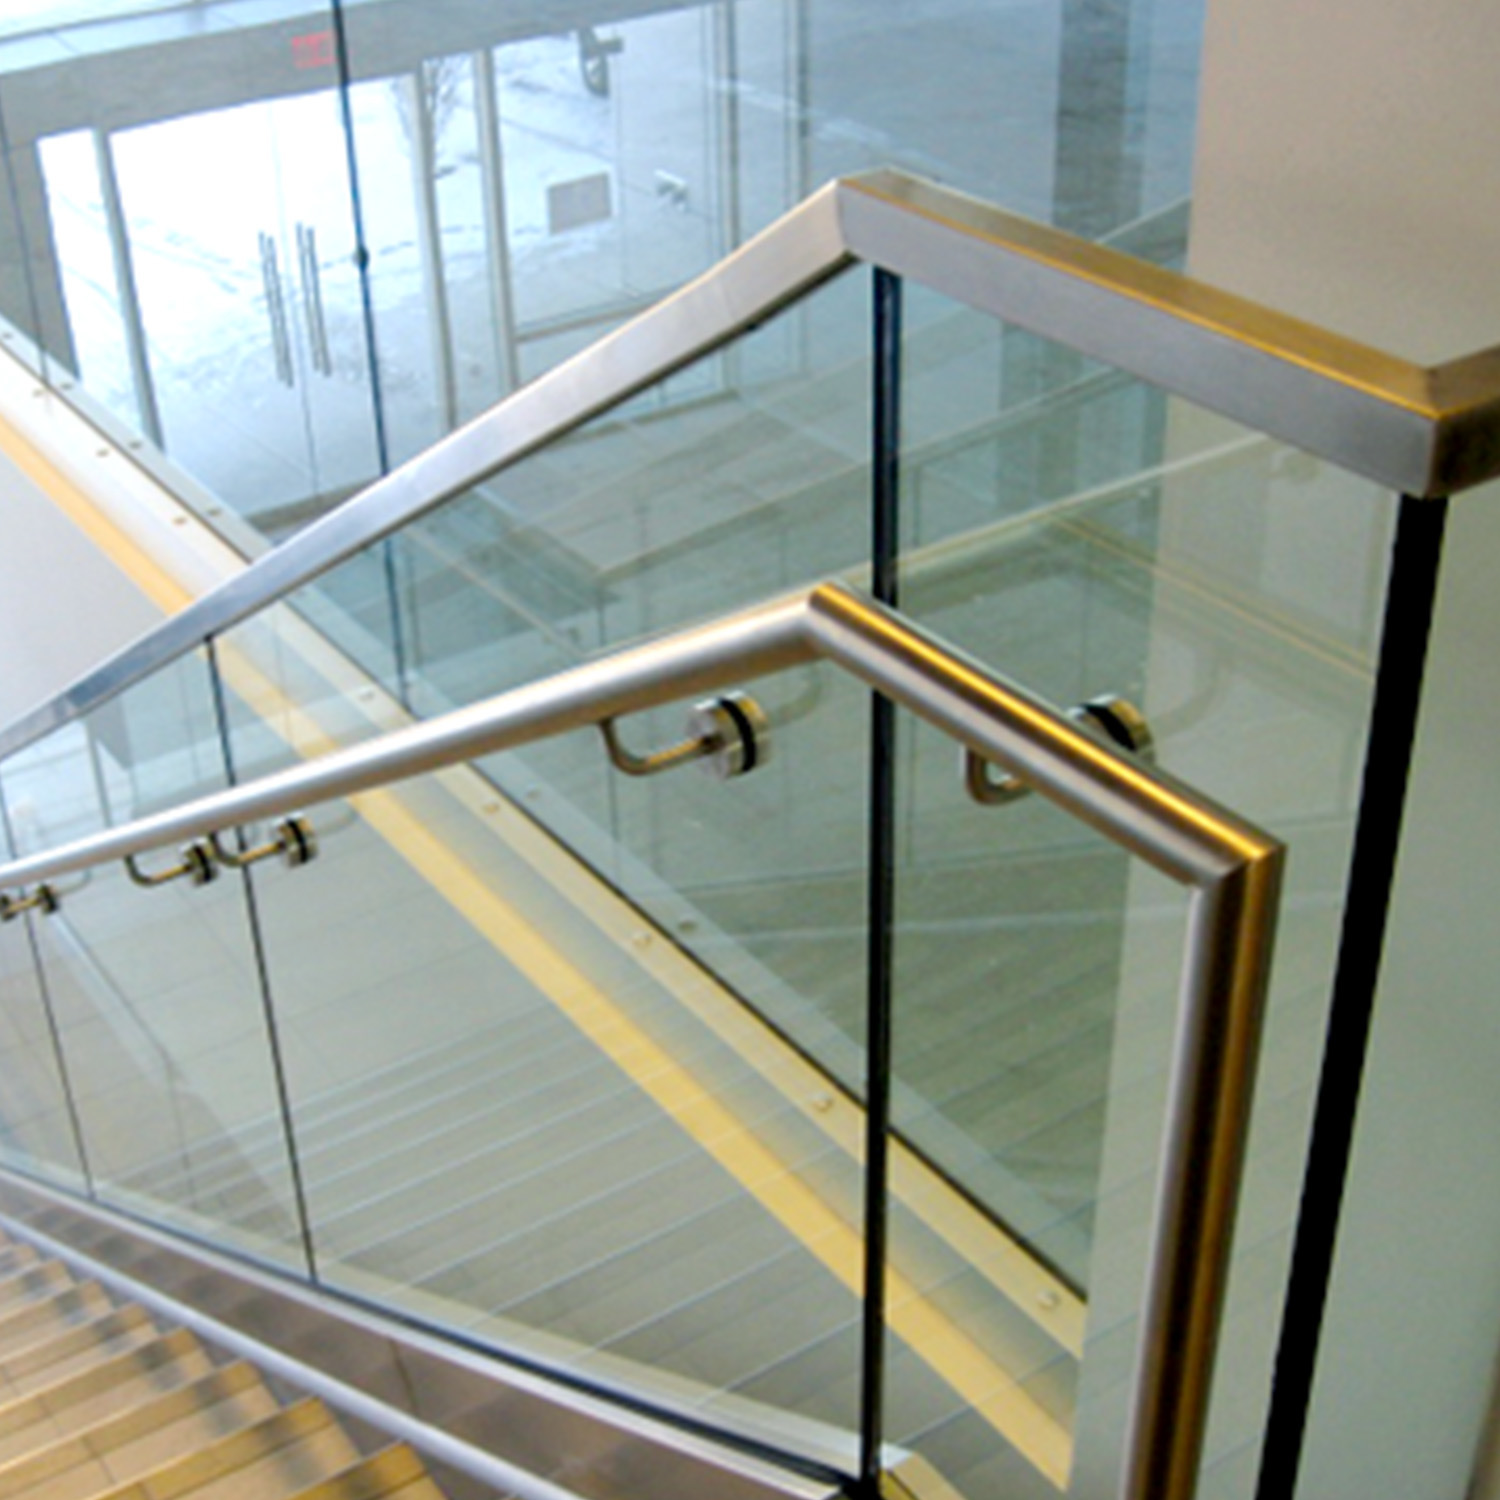 Picture of: China Factory Stainless Steel Glass Deck Railing For Balustrade System China Steel Deck Railing Glass Railing Factory